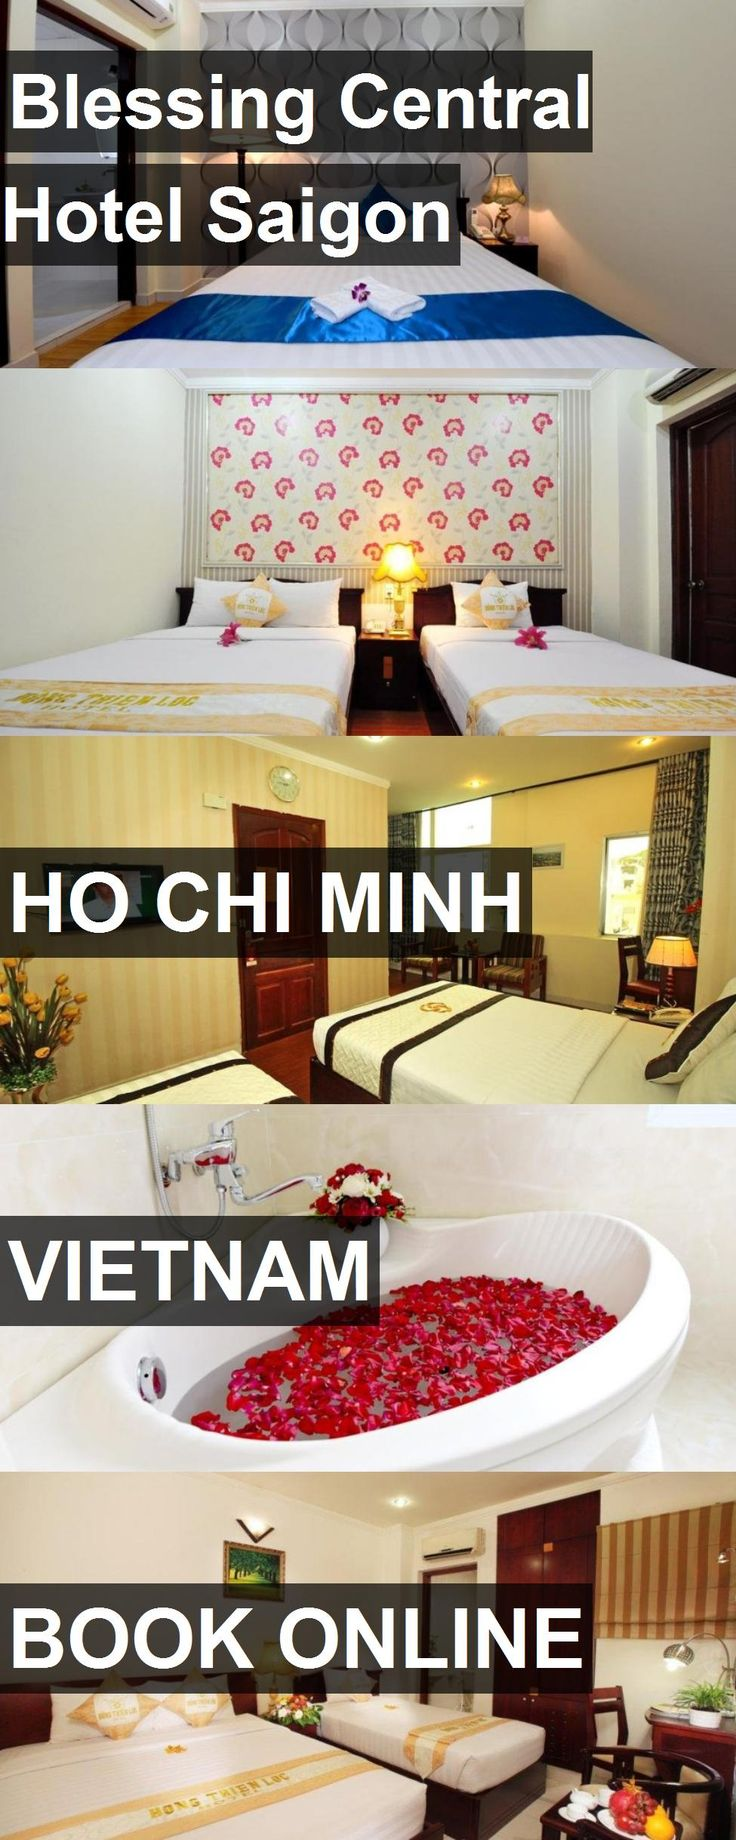 Hotel Blessing Central Hotel Saigon in Ho Chi Minh, Vietnam. For more information, photos, reviews and best prices please follow the link. #Vietnam #HoChiMinh #BlessingCentralHotelSaigon #hotel #travel #vacation